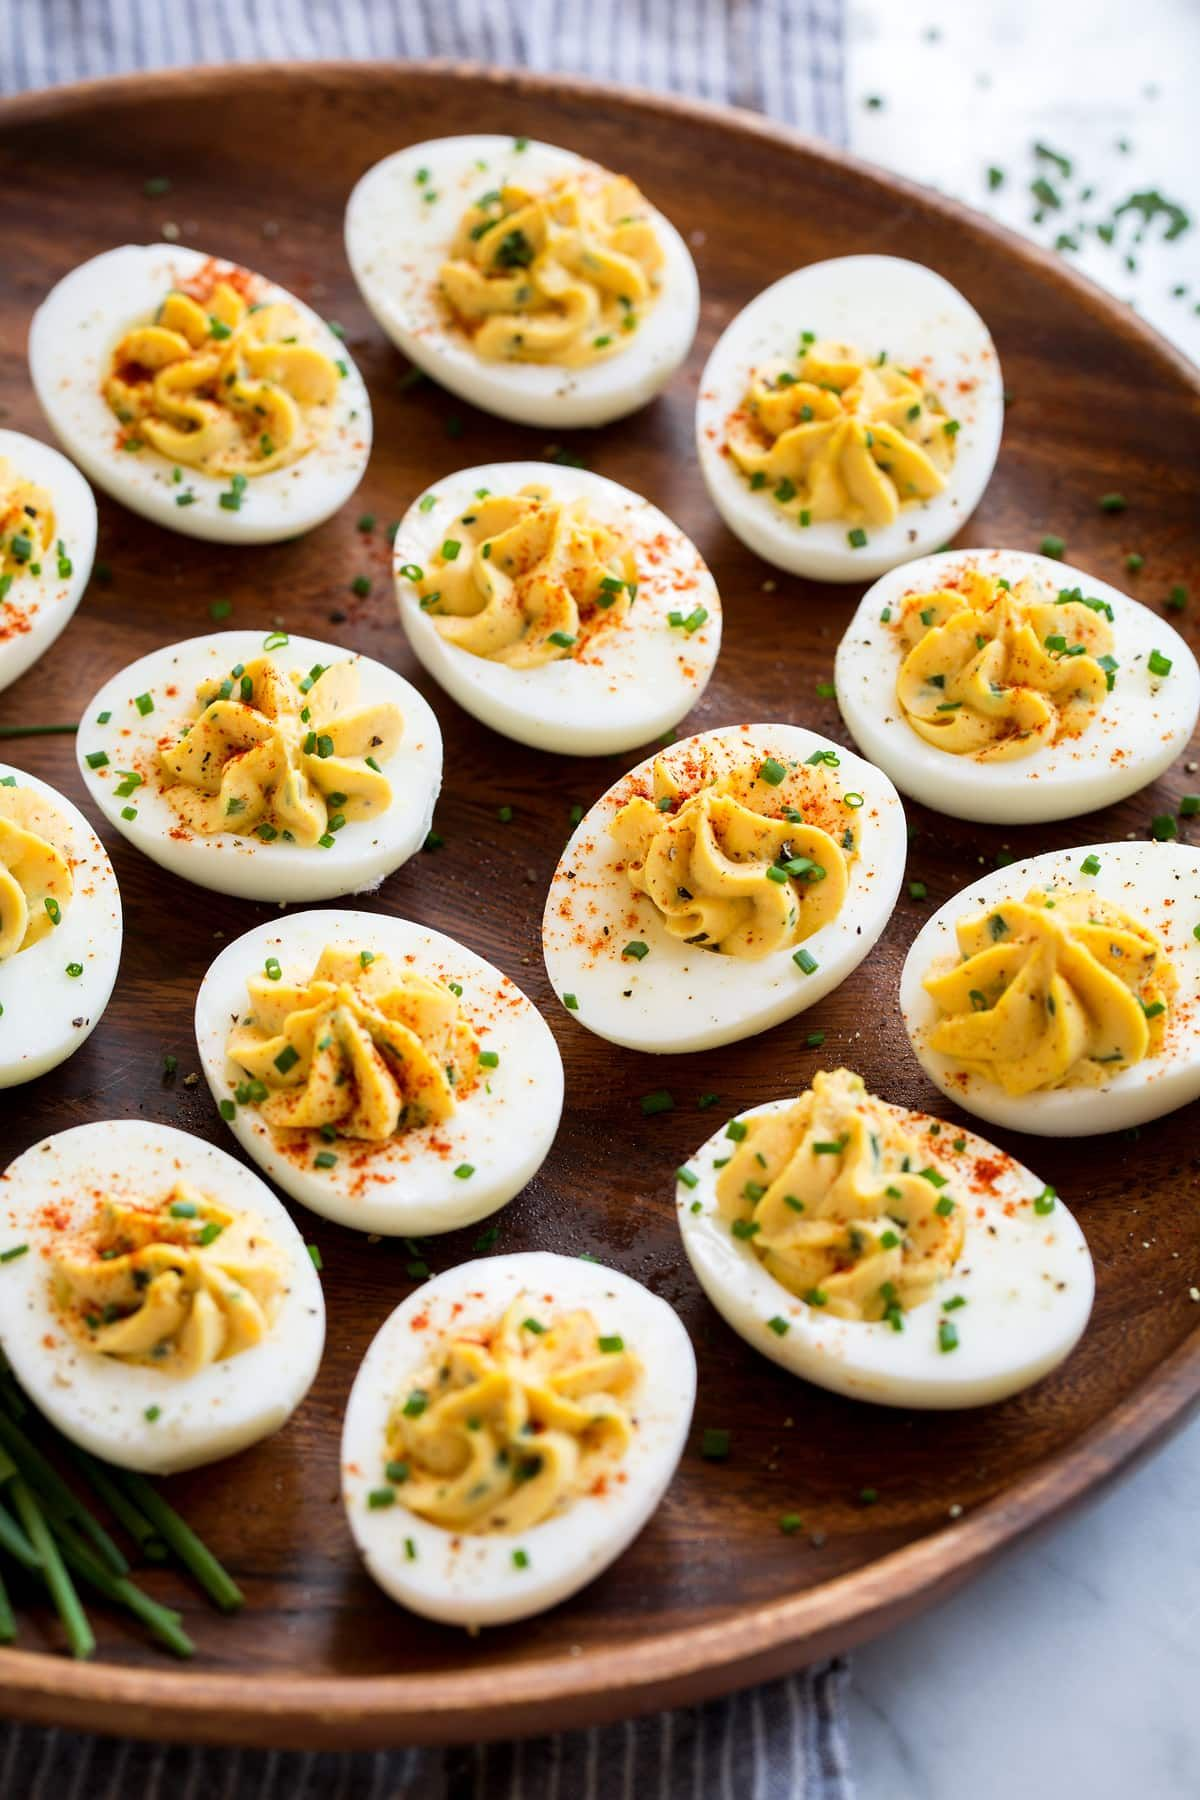 Best Deviled Eggs Recipe (with Mix-In Ideas) - Cooking Classy